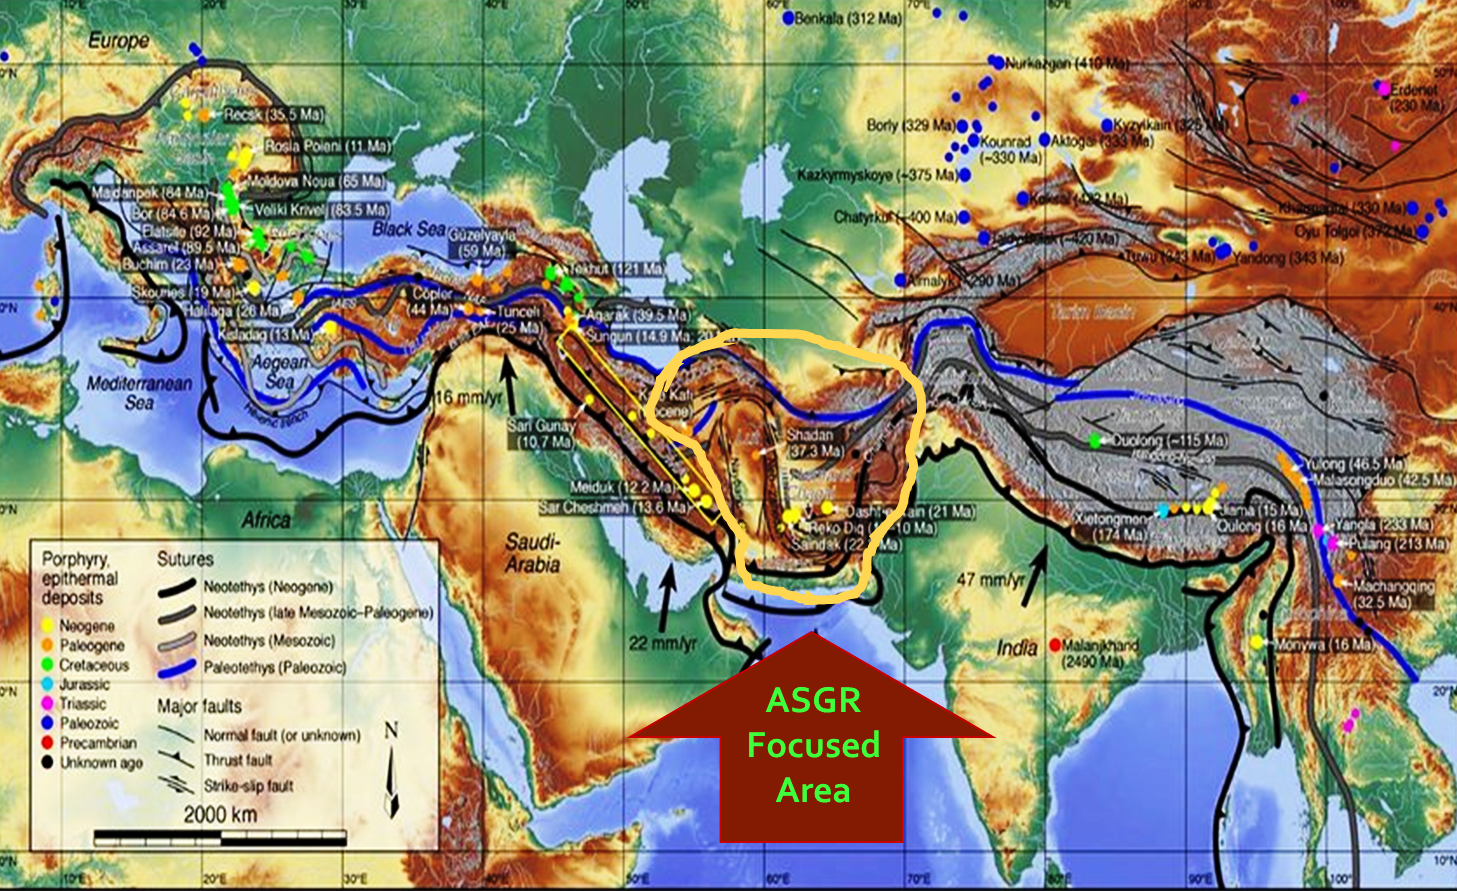 http://www.themughals.net/sectors/geophysical